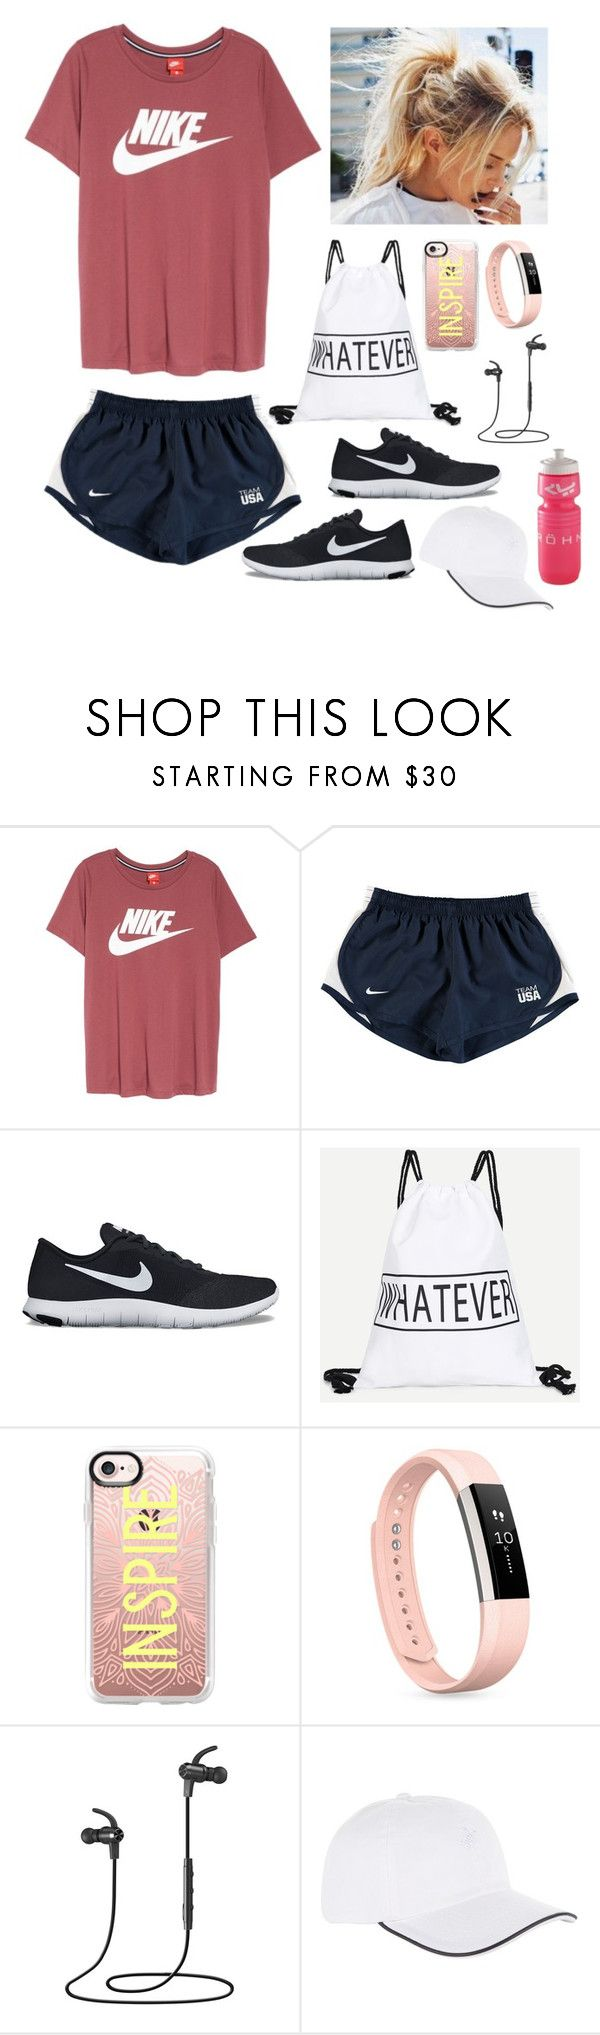 """Exercising ️"" by gussied-up on Polyvore featuring NIKE, Casetify, Fitbit, VaVa and Vilebrequin"